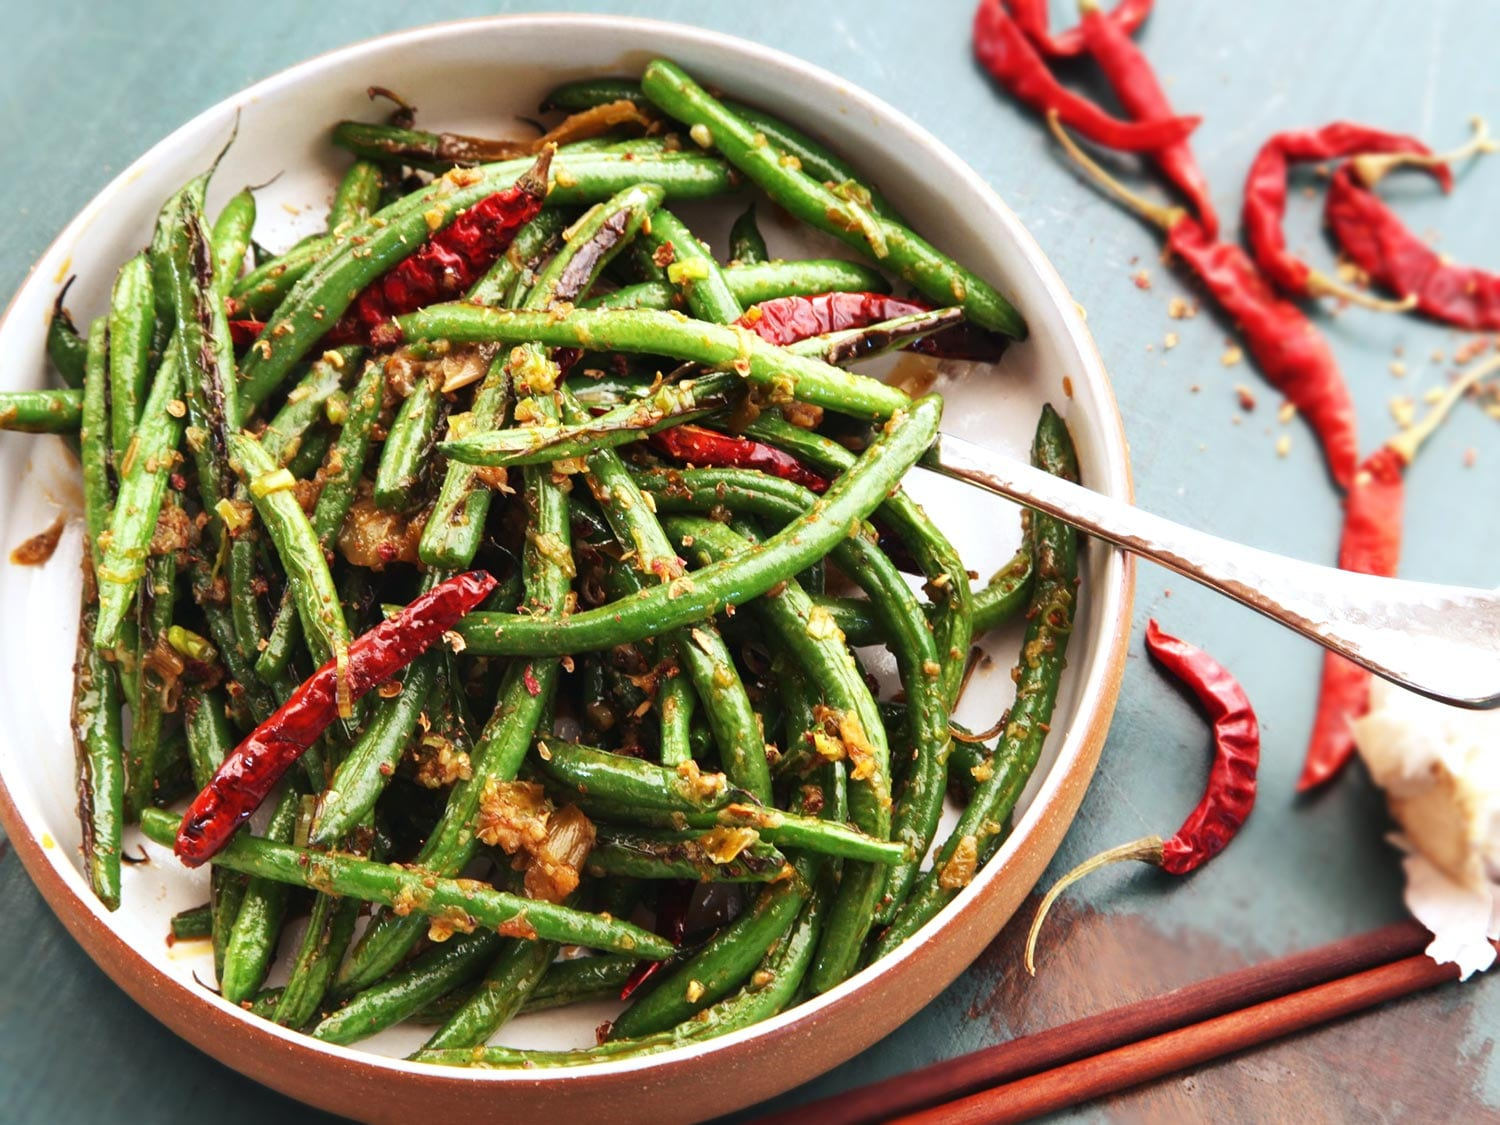 20150305-sichuan-dry-fried-green-bean-broiled-food-lab-13